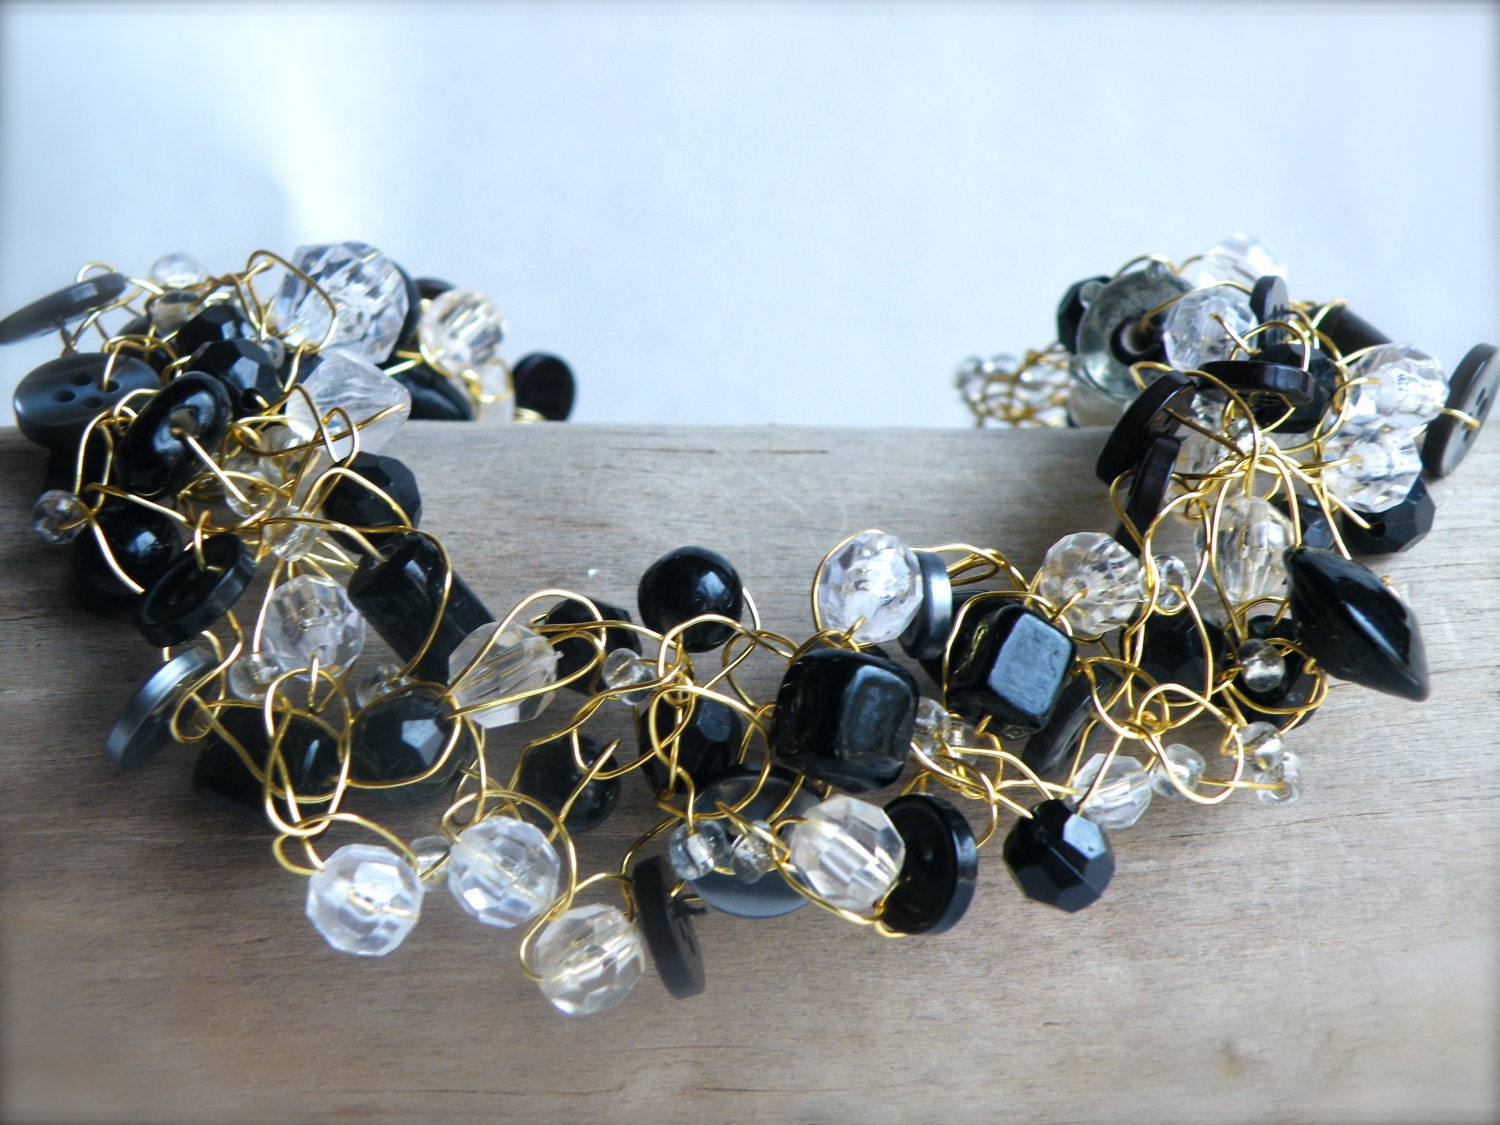 Black Button Crochet Wire Necklace... Crystal Droplets & Assorted Black Beads on Gold Wire (Free Shipping)